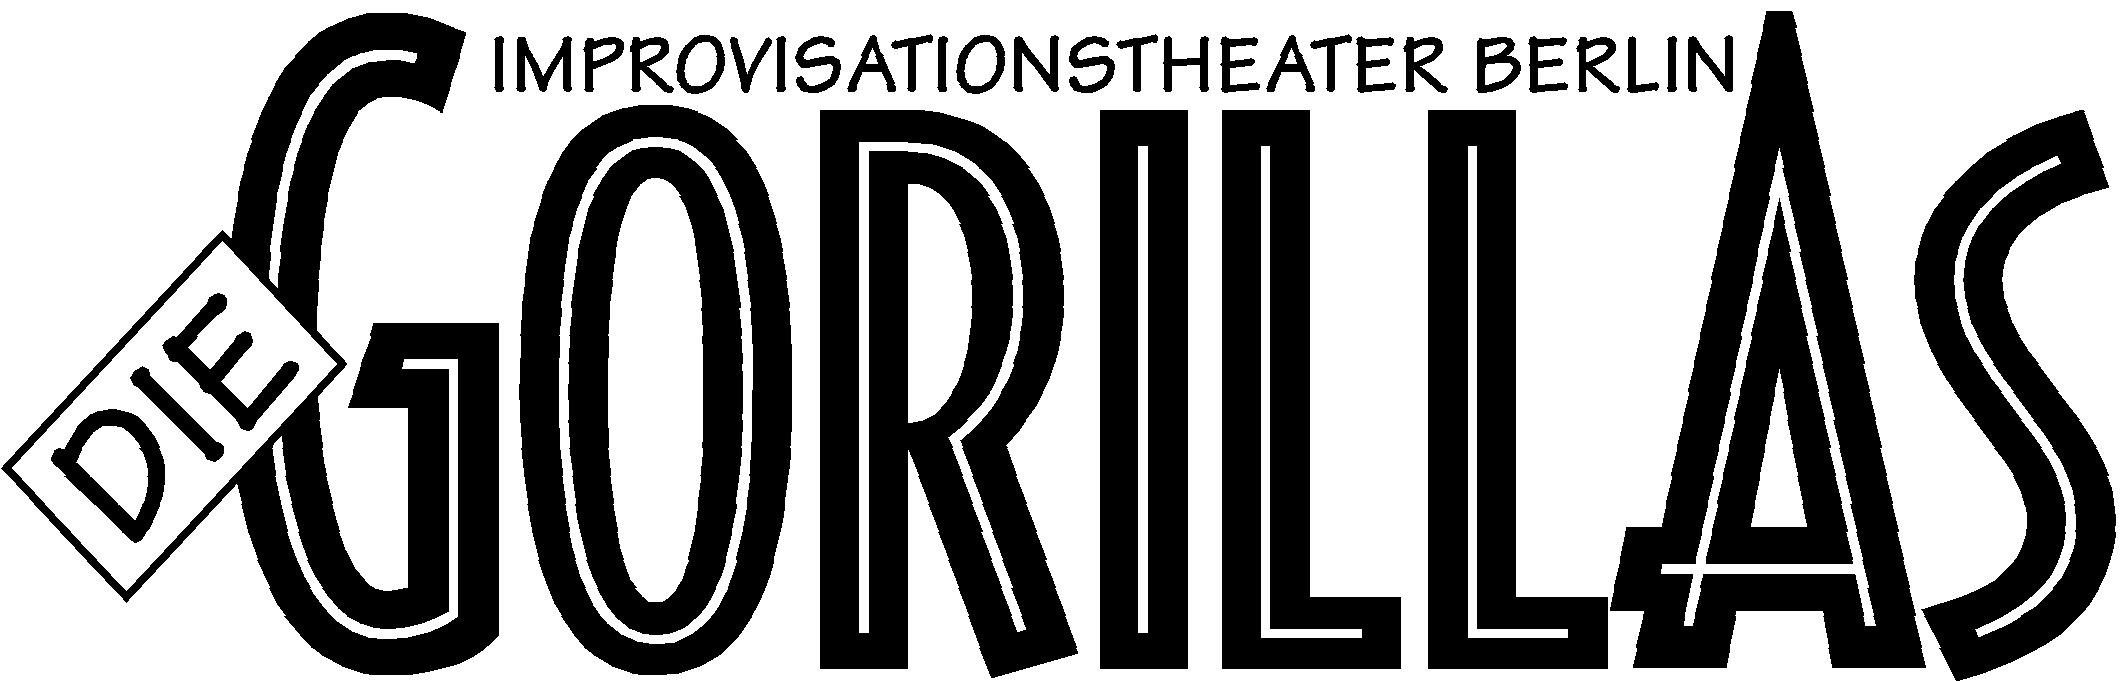 Die Gorillas Improvisationstheater Berlin